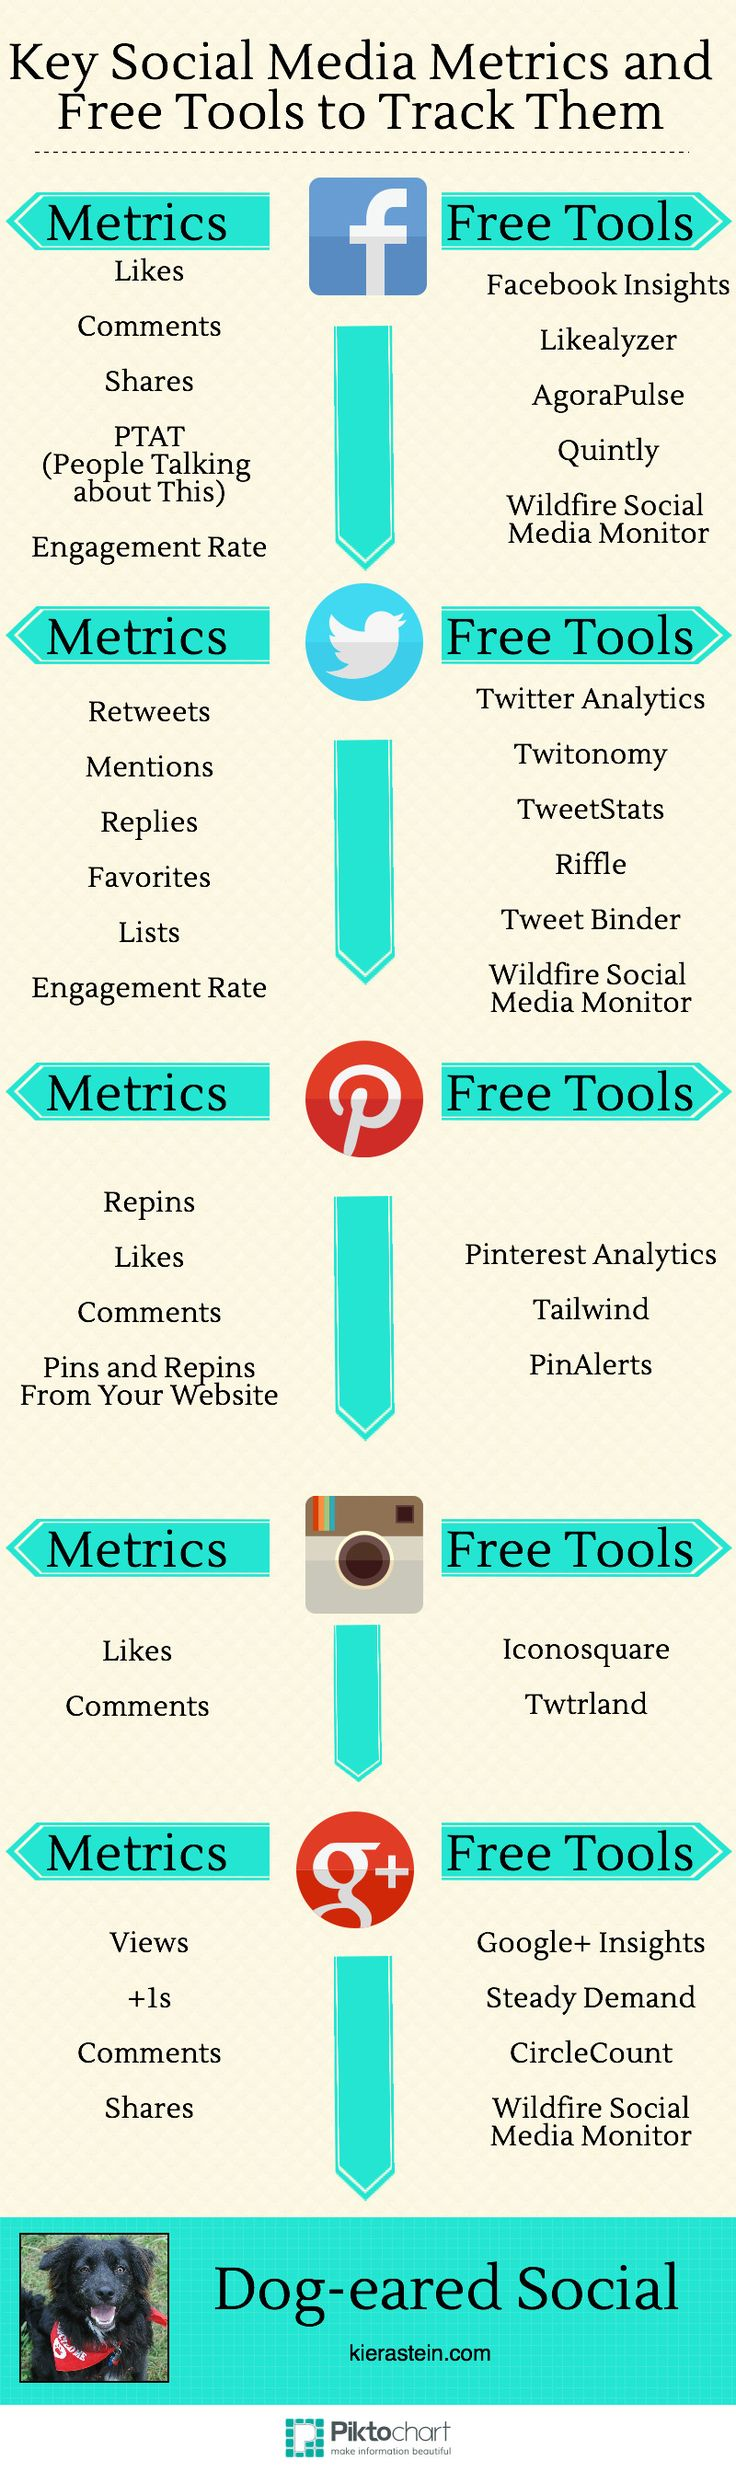 The best free tools to measure key #socialmedia metrics on Facebook, Twitter, Pinterest, Instagram and Google+